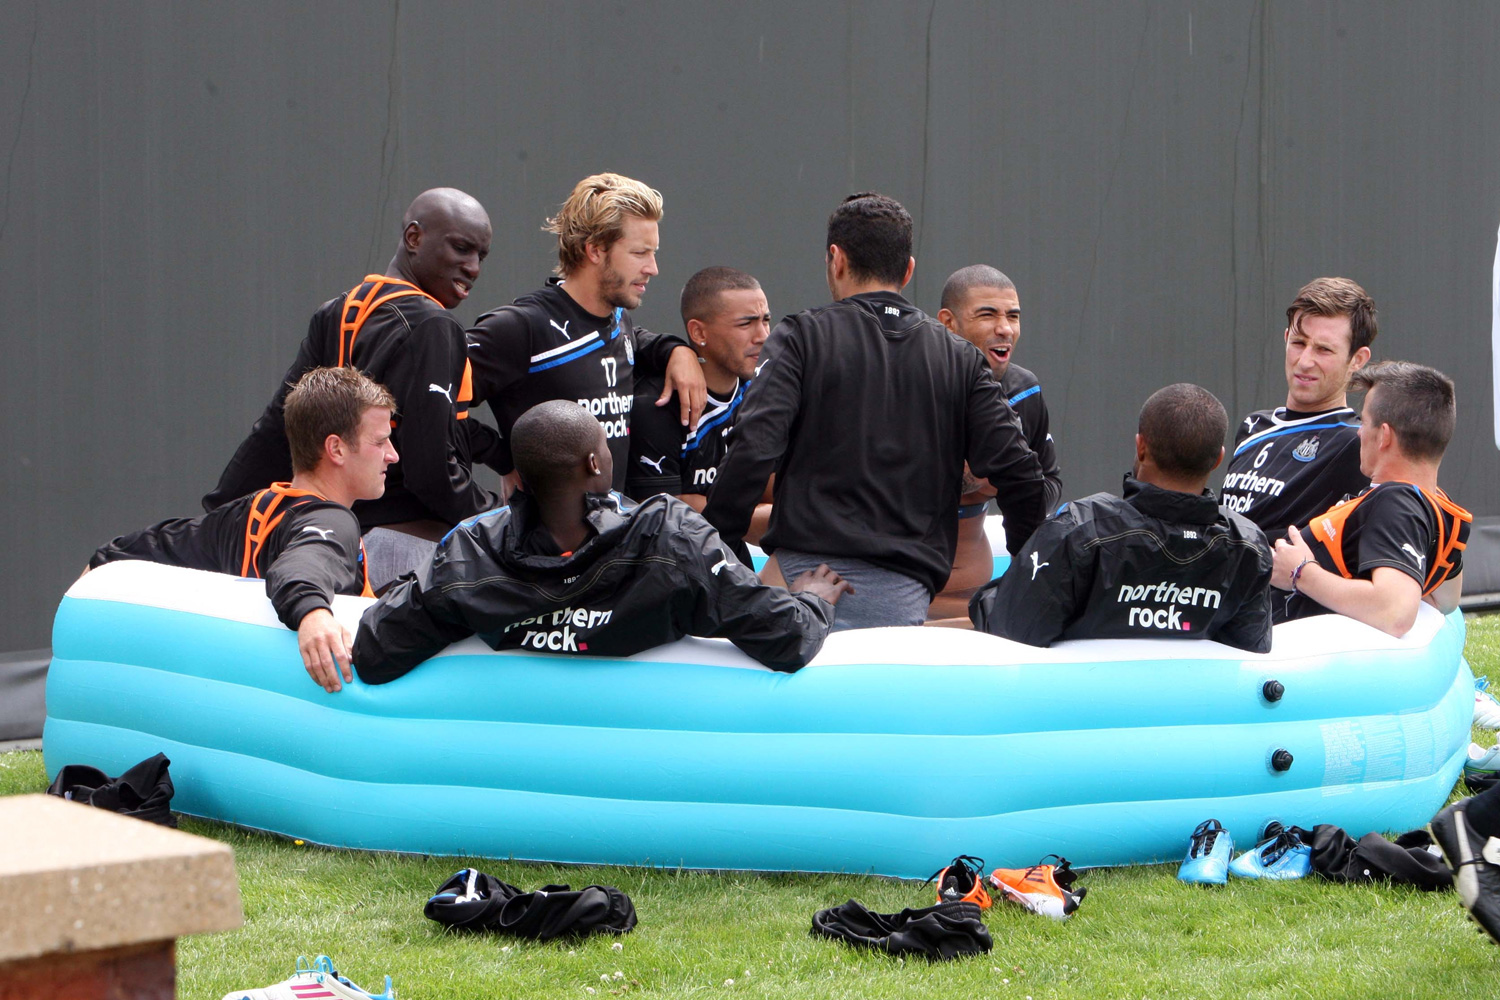 Newcastle United players, who attended a training session at the Little Benton Training Ground in July 2011, enjoy a group recovery session in an inflatable pool filled with ice.